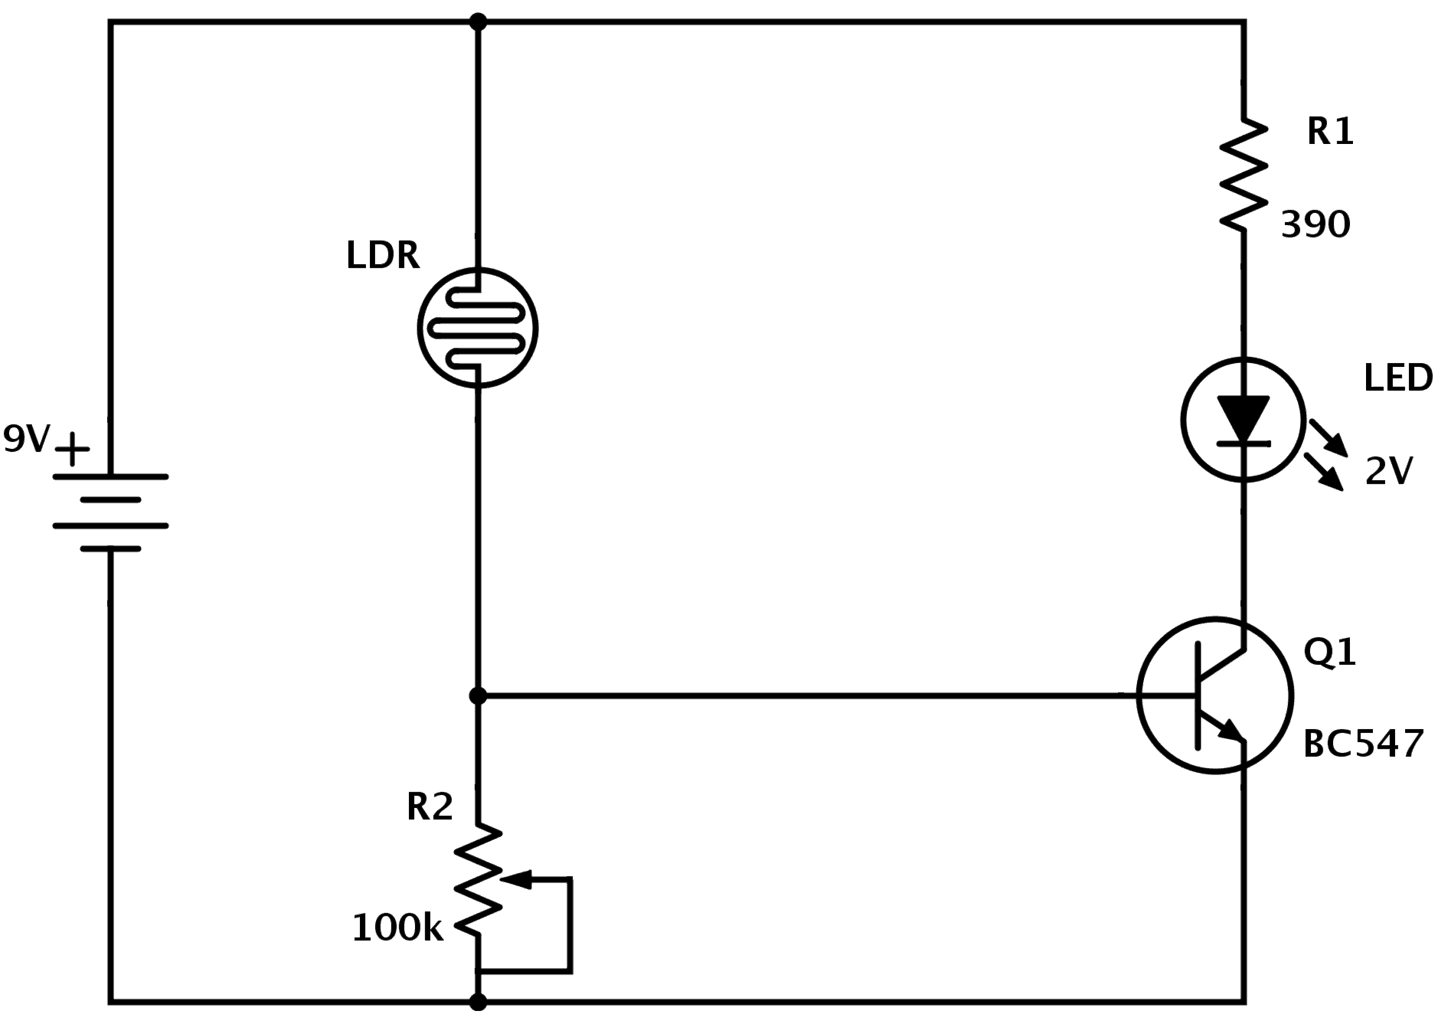 circuit diagram how to read and understand any schematic rh build electronic circuits com circuit diagram quiz circuit diagram tutorials